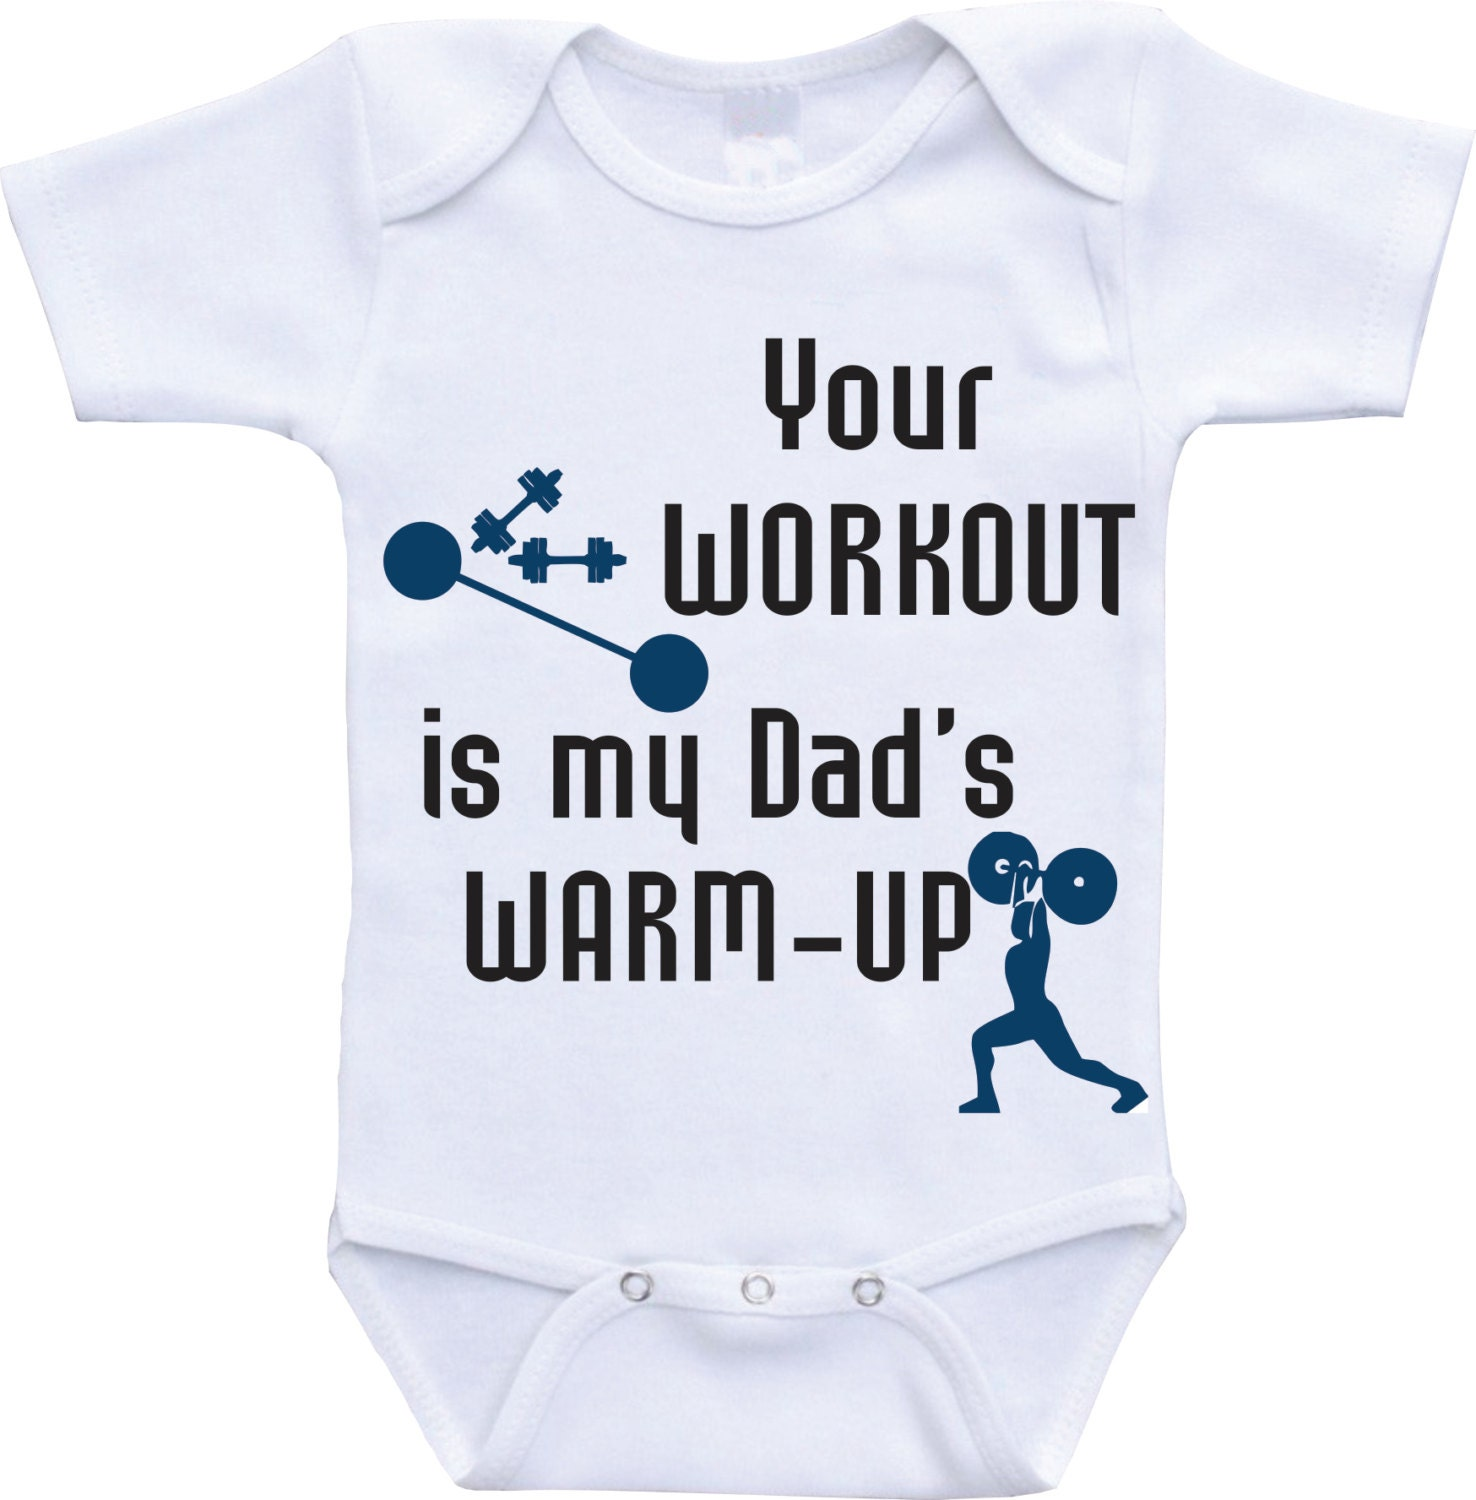 Workout Baby Clothes Your Dad Warm